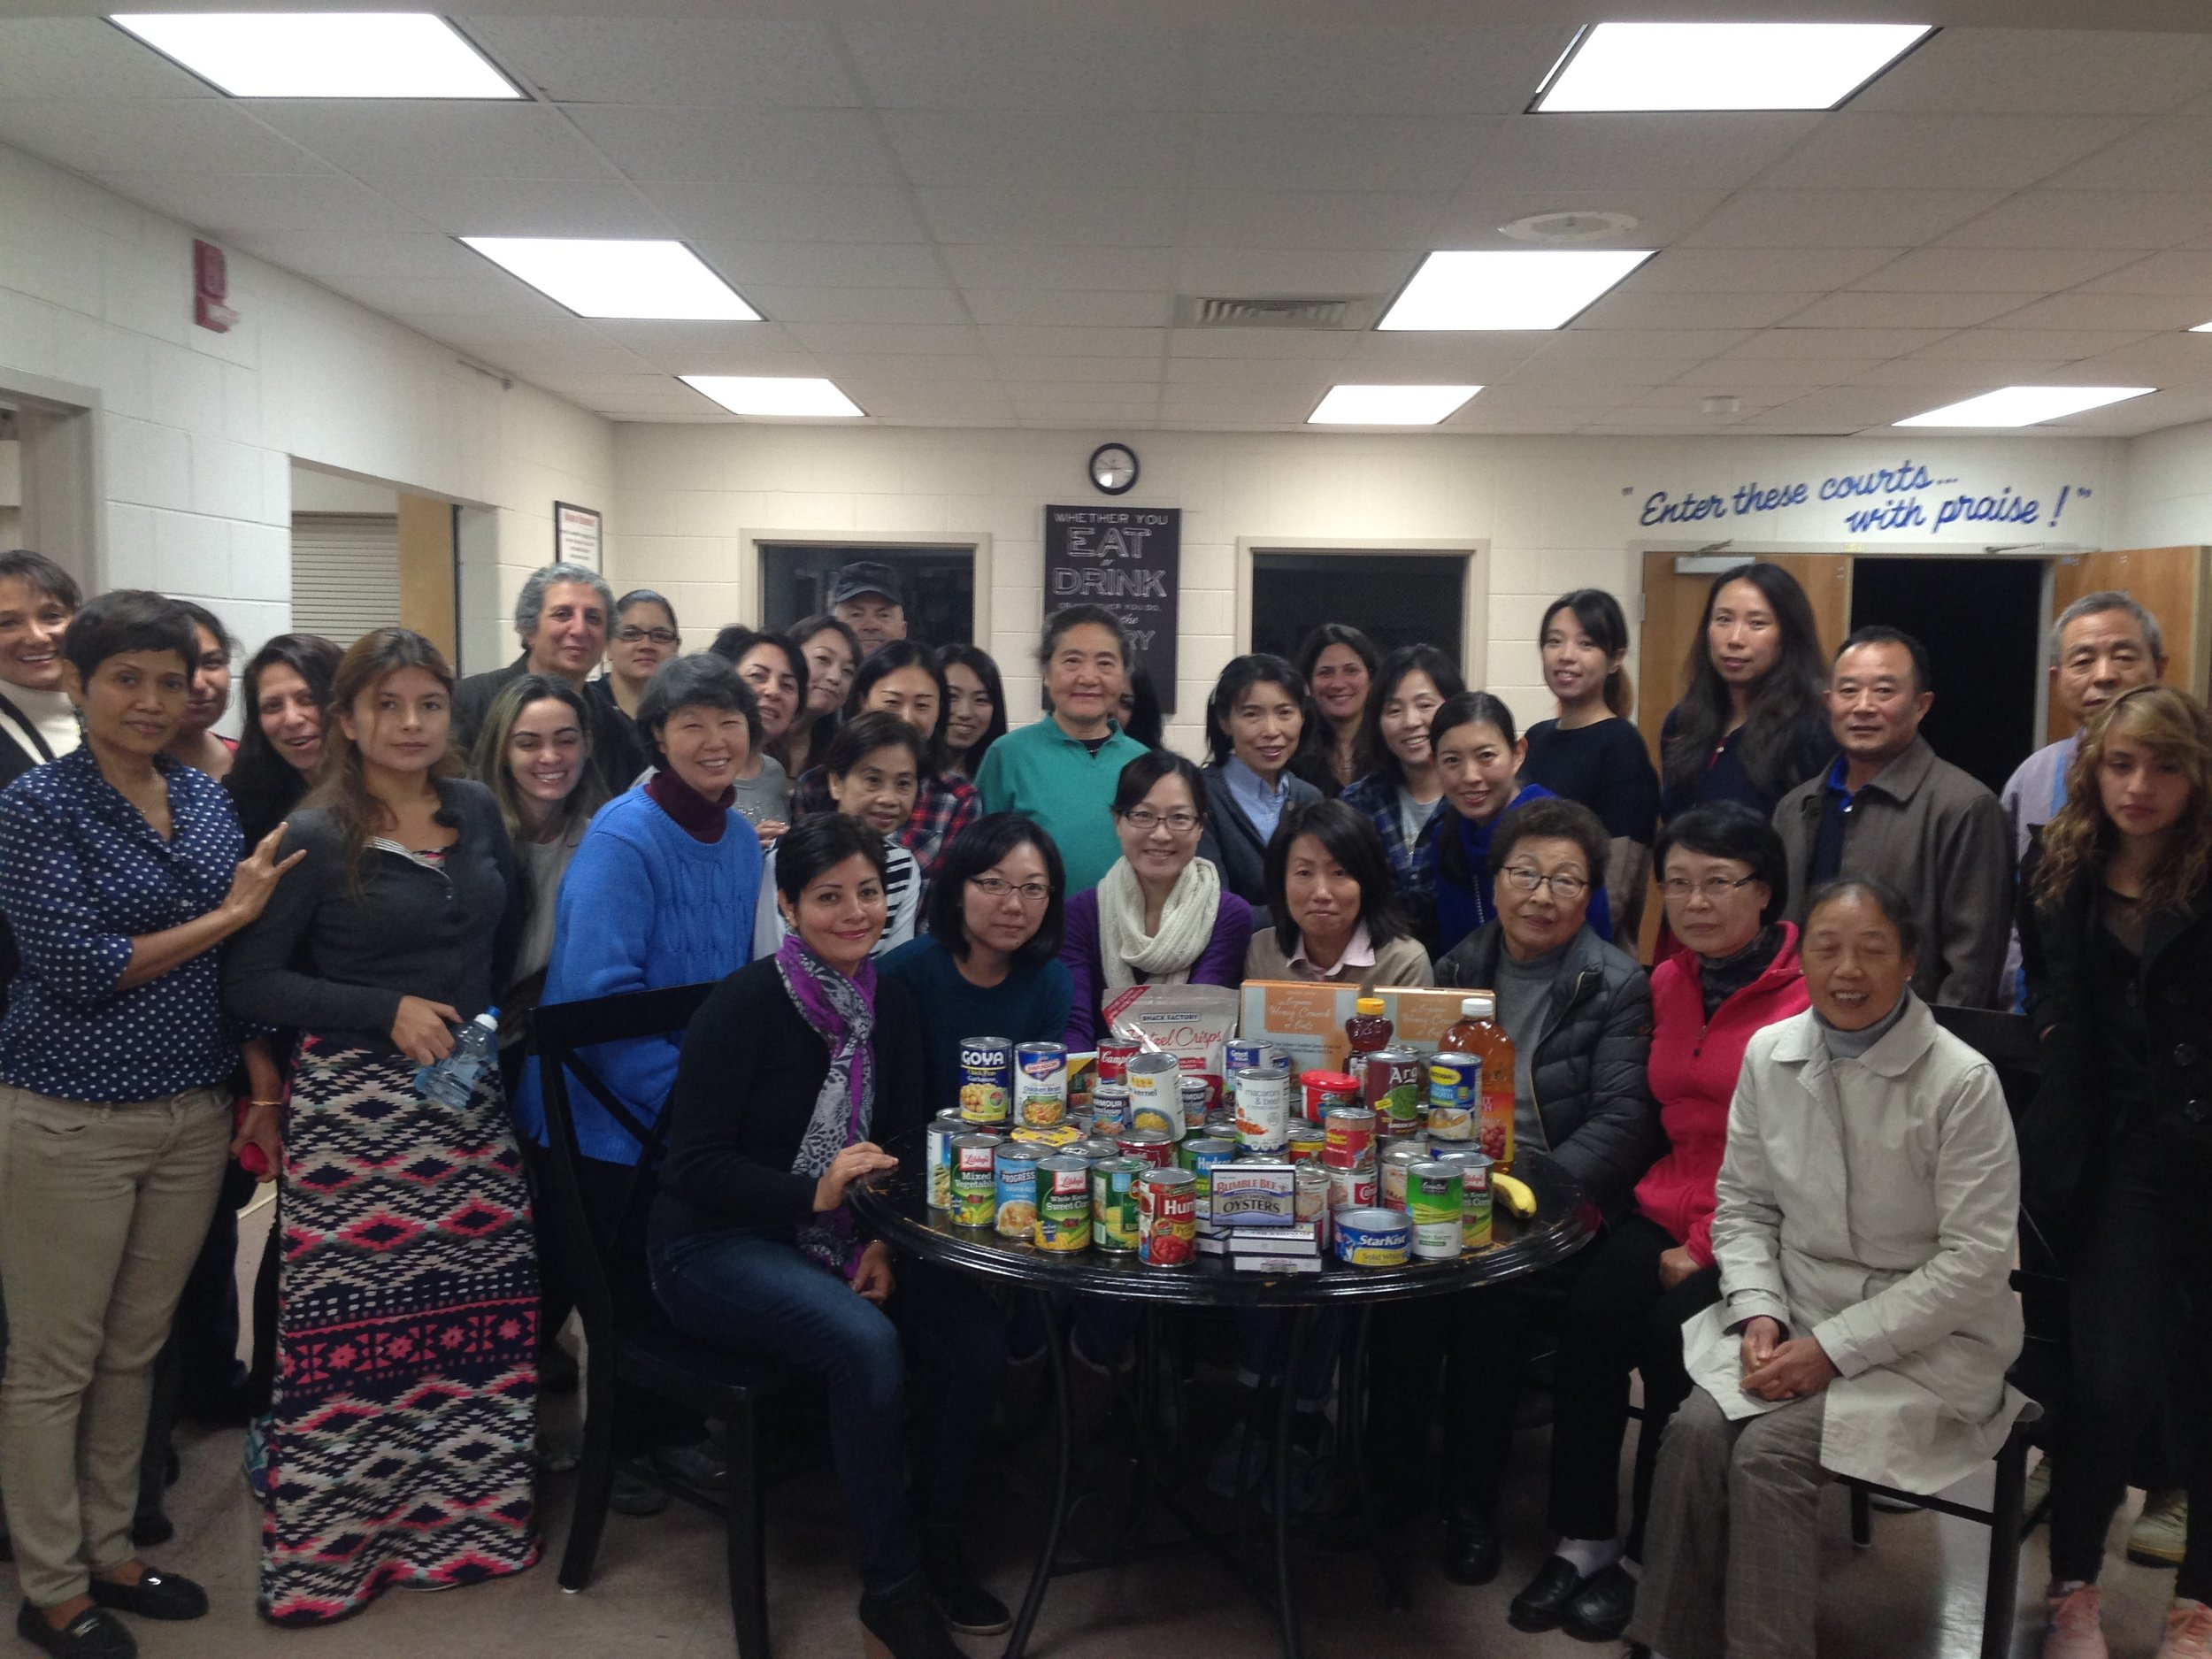 Yorktown Adult Education ESL students gathering for a canned food fundraiser in collaboration with Bethel Baptist Church.